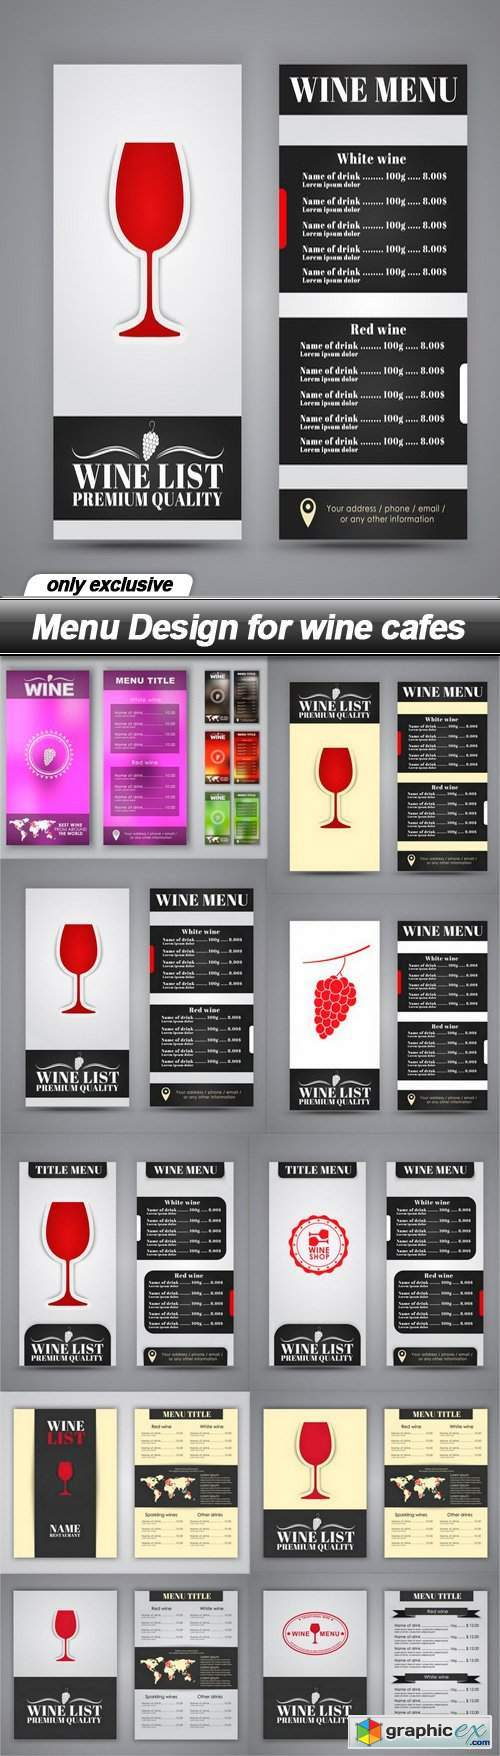 Menu Design for wine cafes - 10 EPS